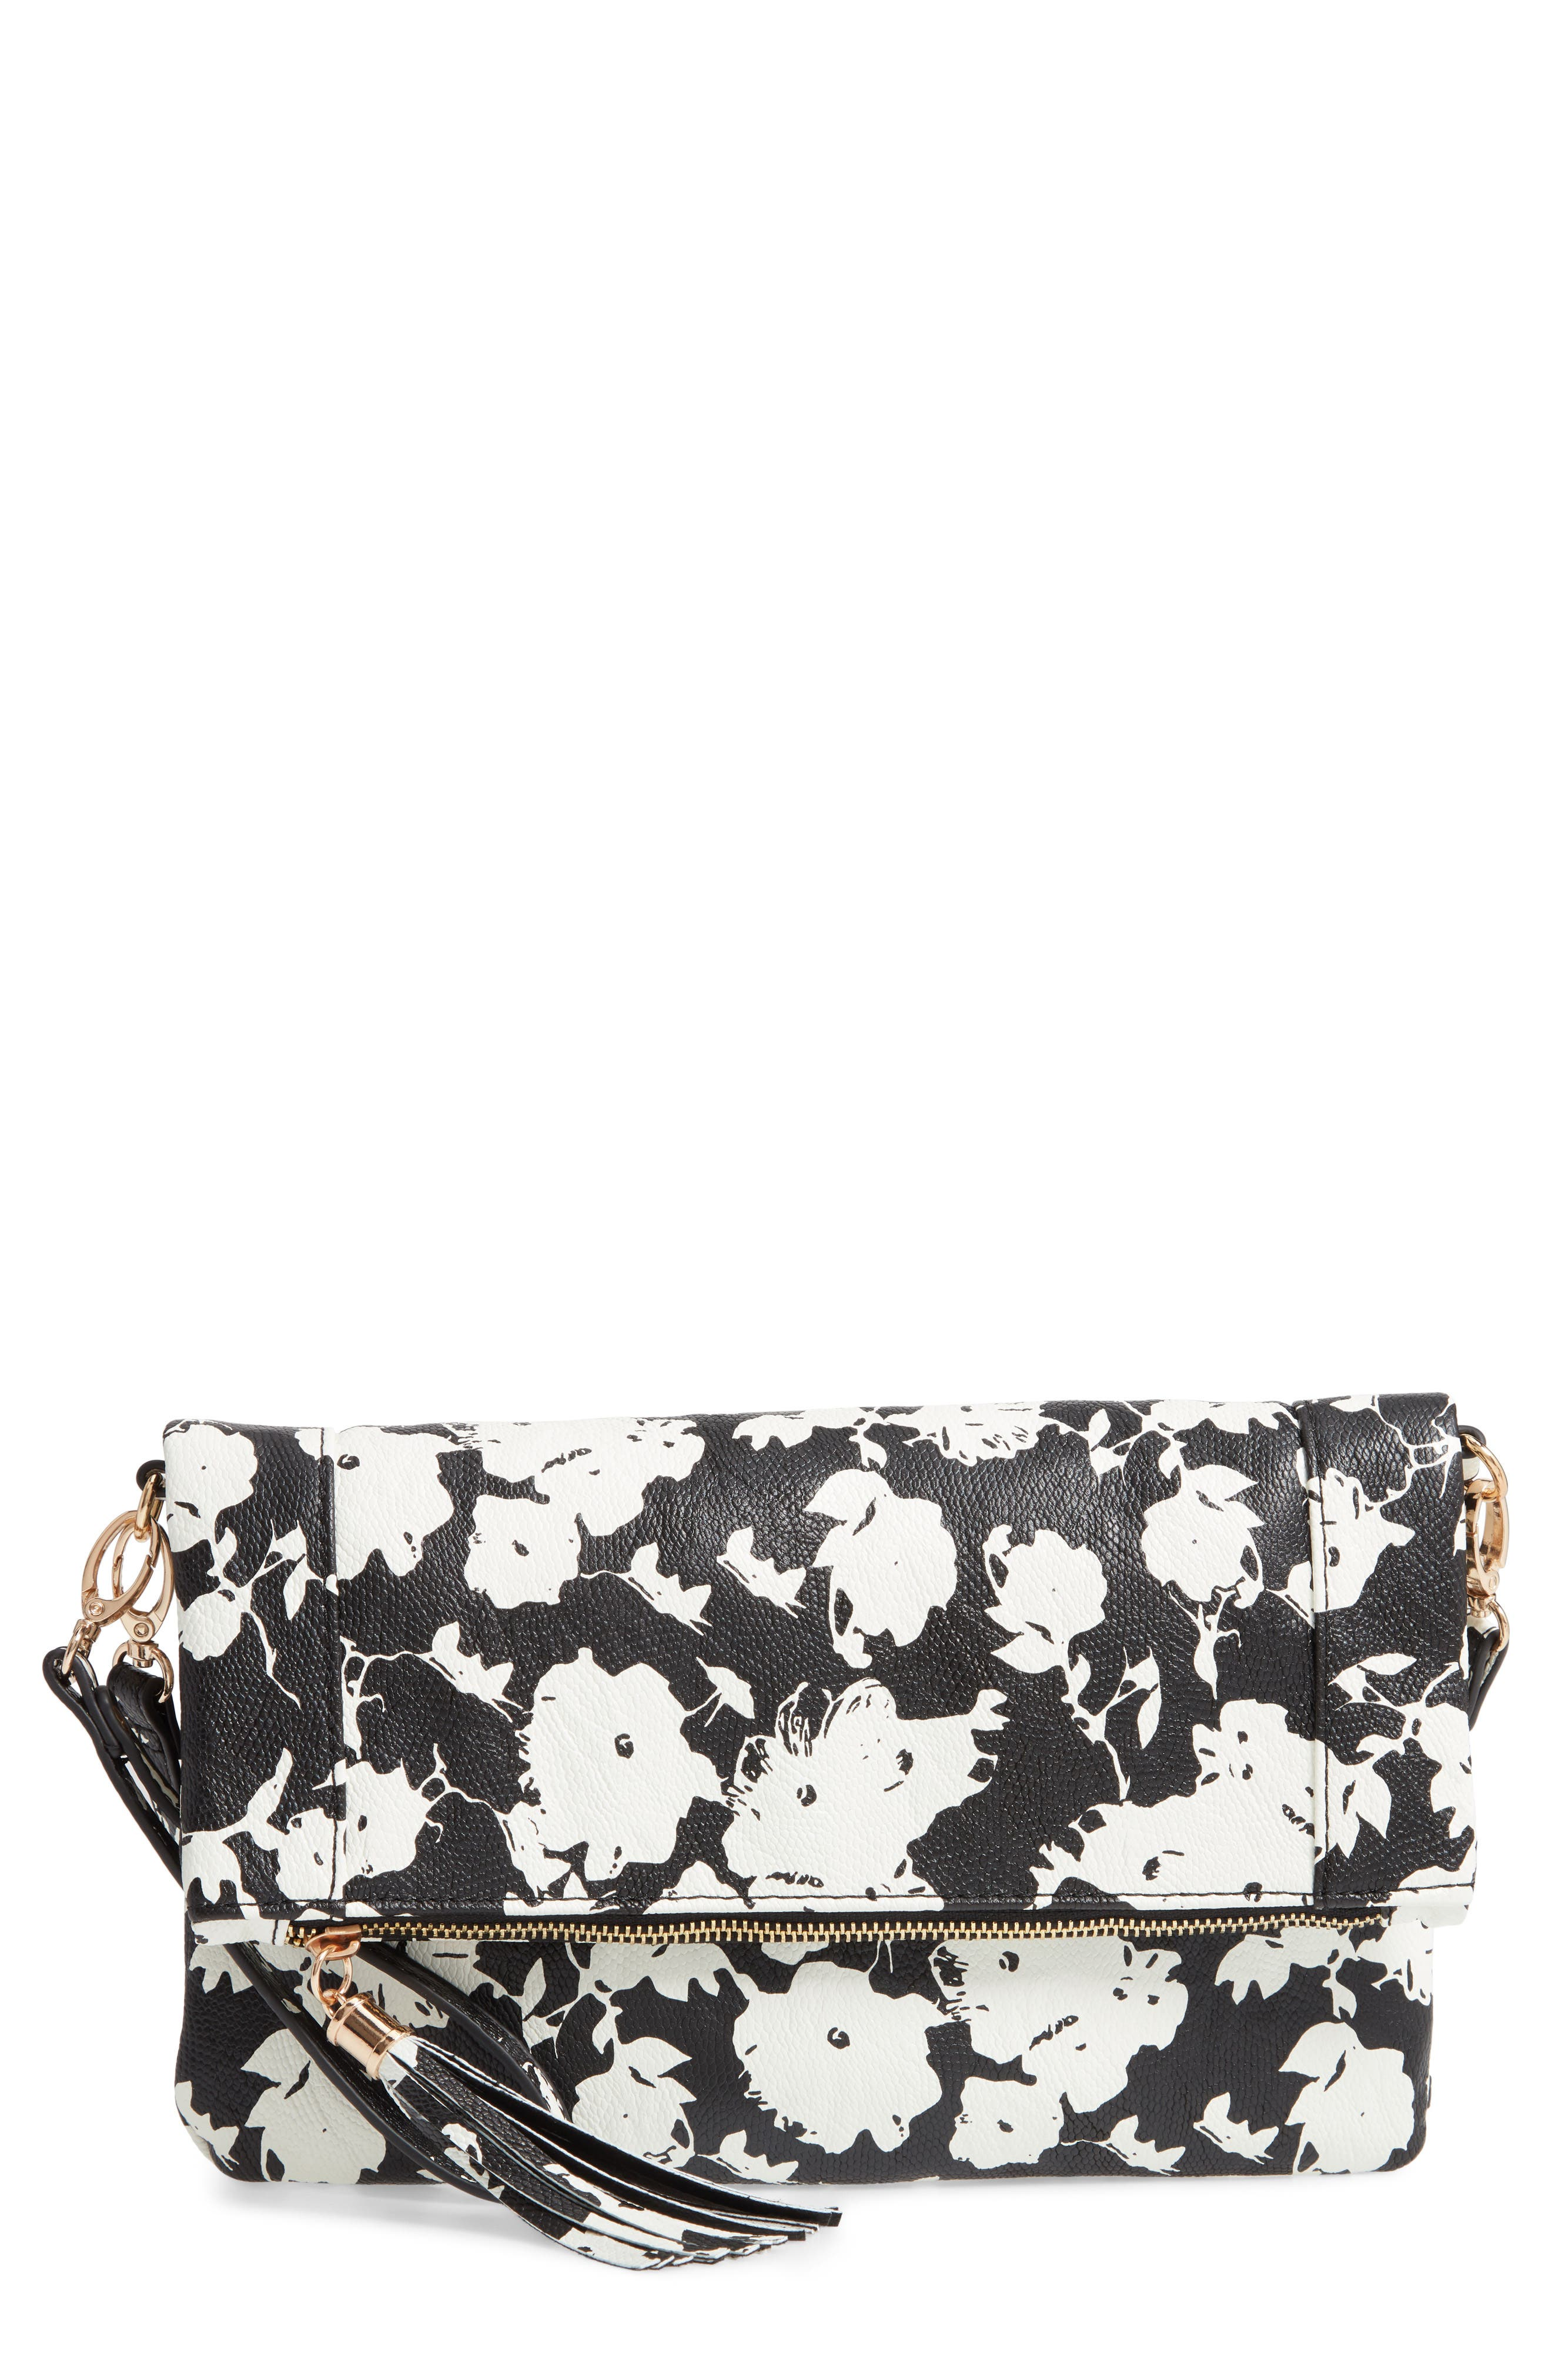 SOLE SOCIETY, 'Tasia' Print Foldover Clutch, Main thumbnail 1, color, BLACK FLORAL